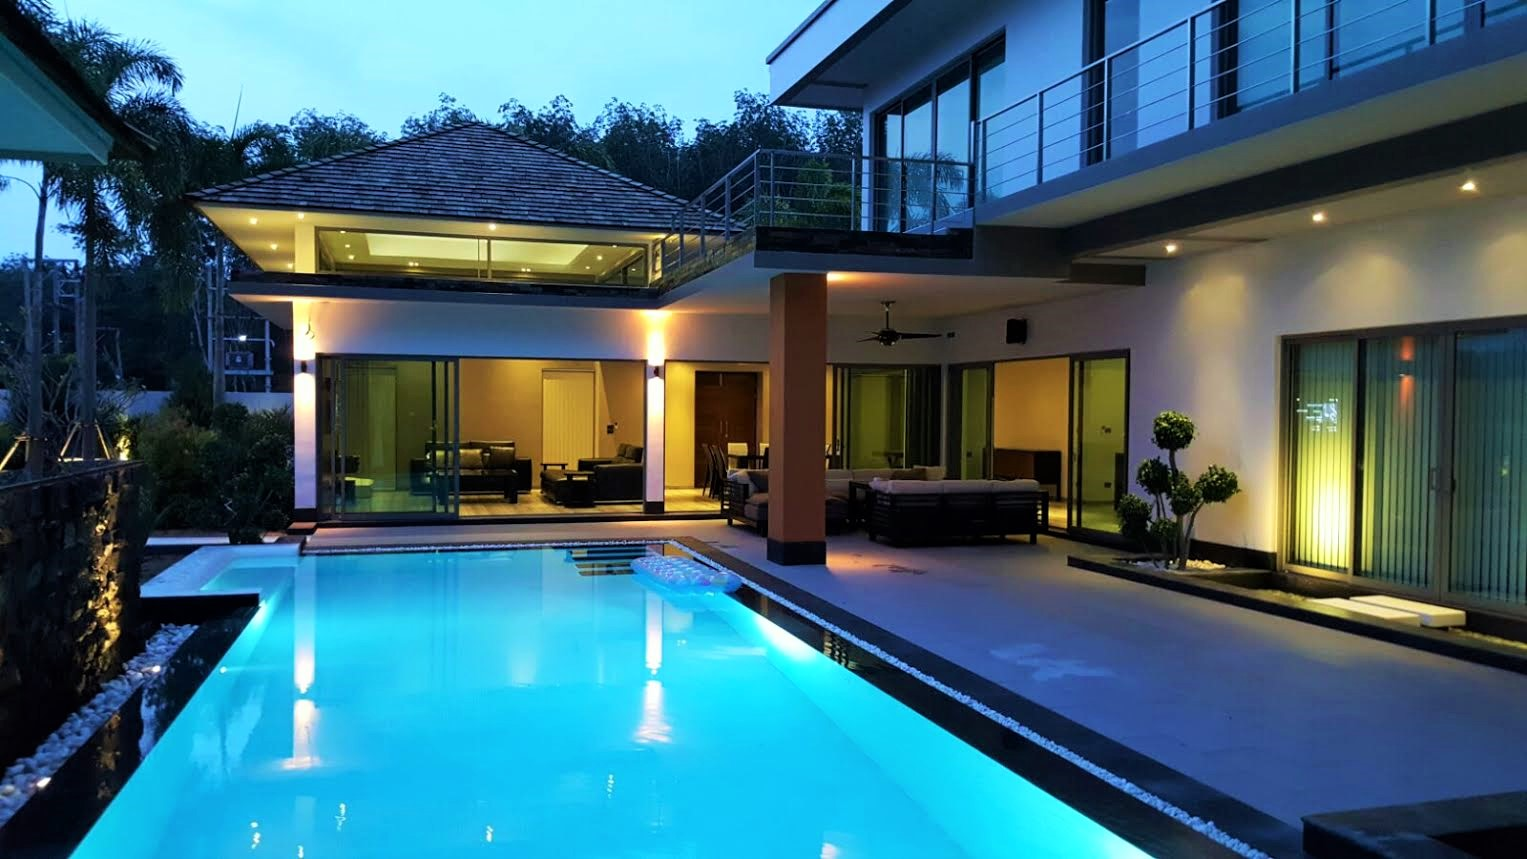 The Grand Pool Villa 4 Bedrooms for Sale 25.9 MTHB